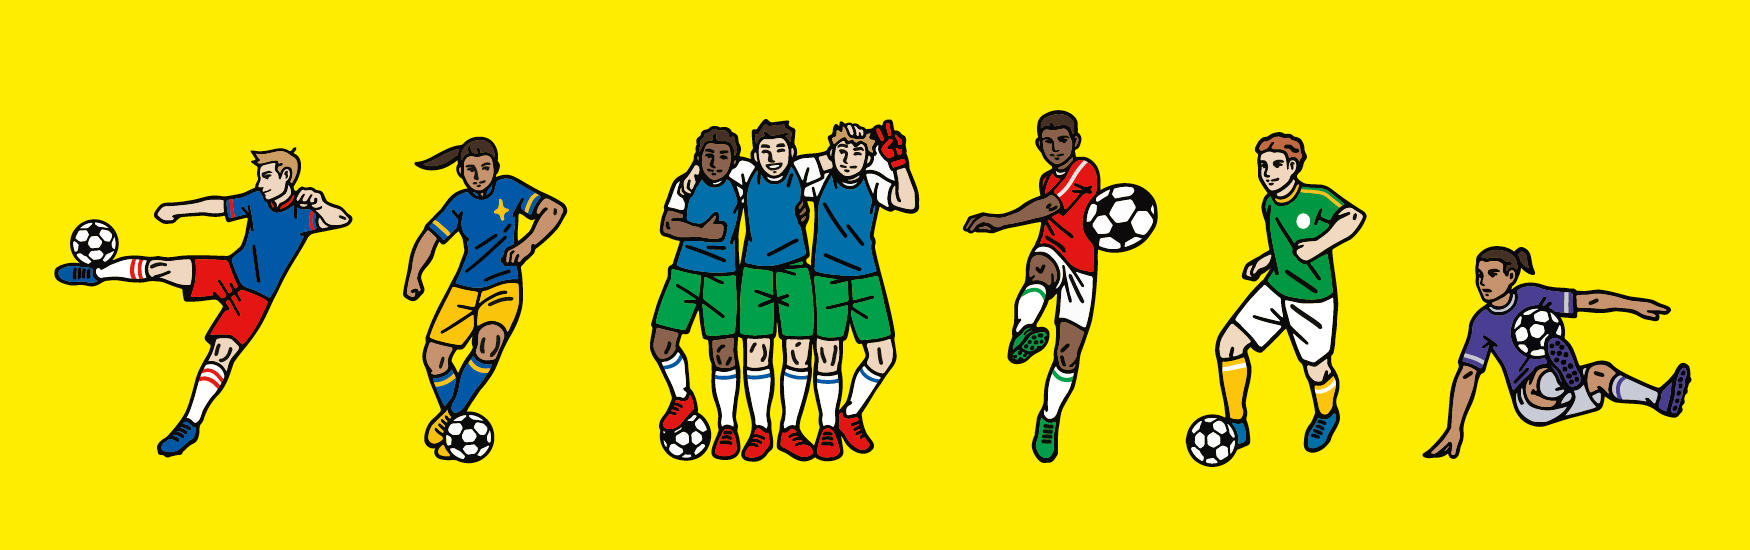 Funny_Patches-FLX_fussball